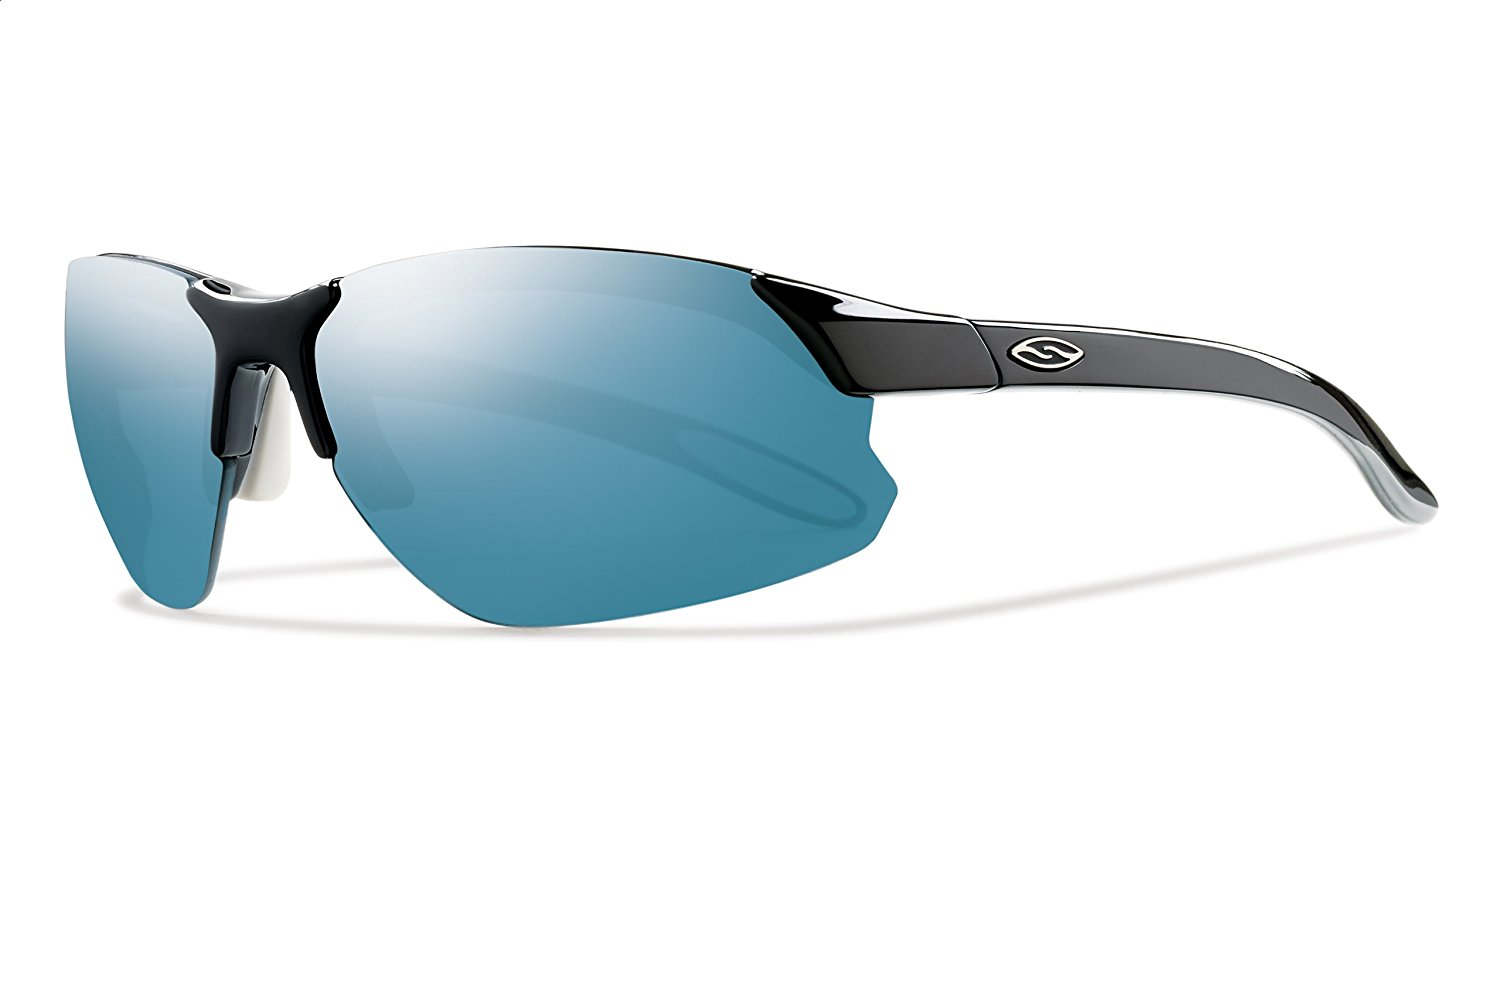 411a306e334 Get Quotations · Smith Optics Parallel D Max Sunglass